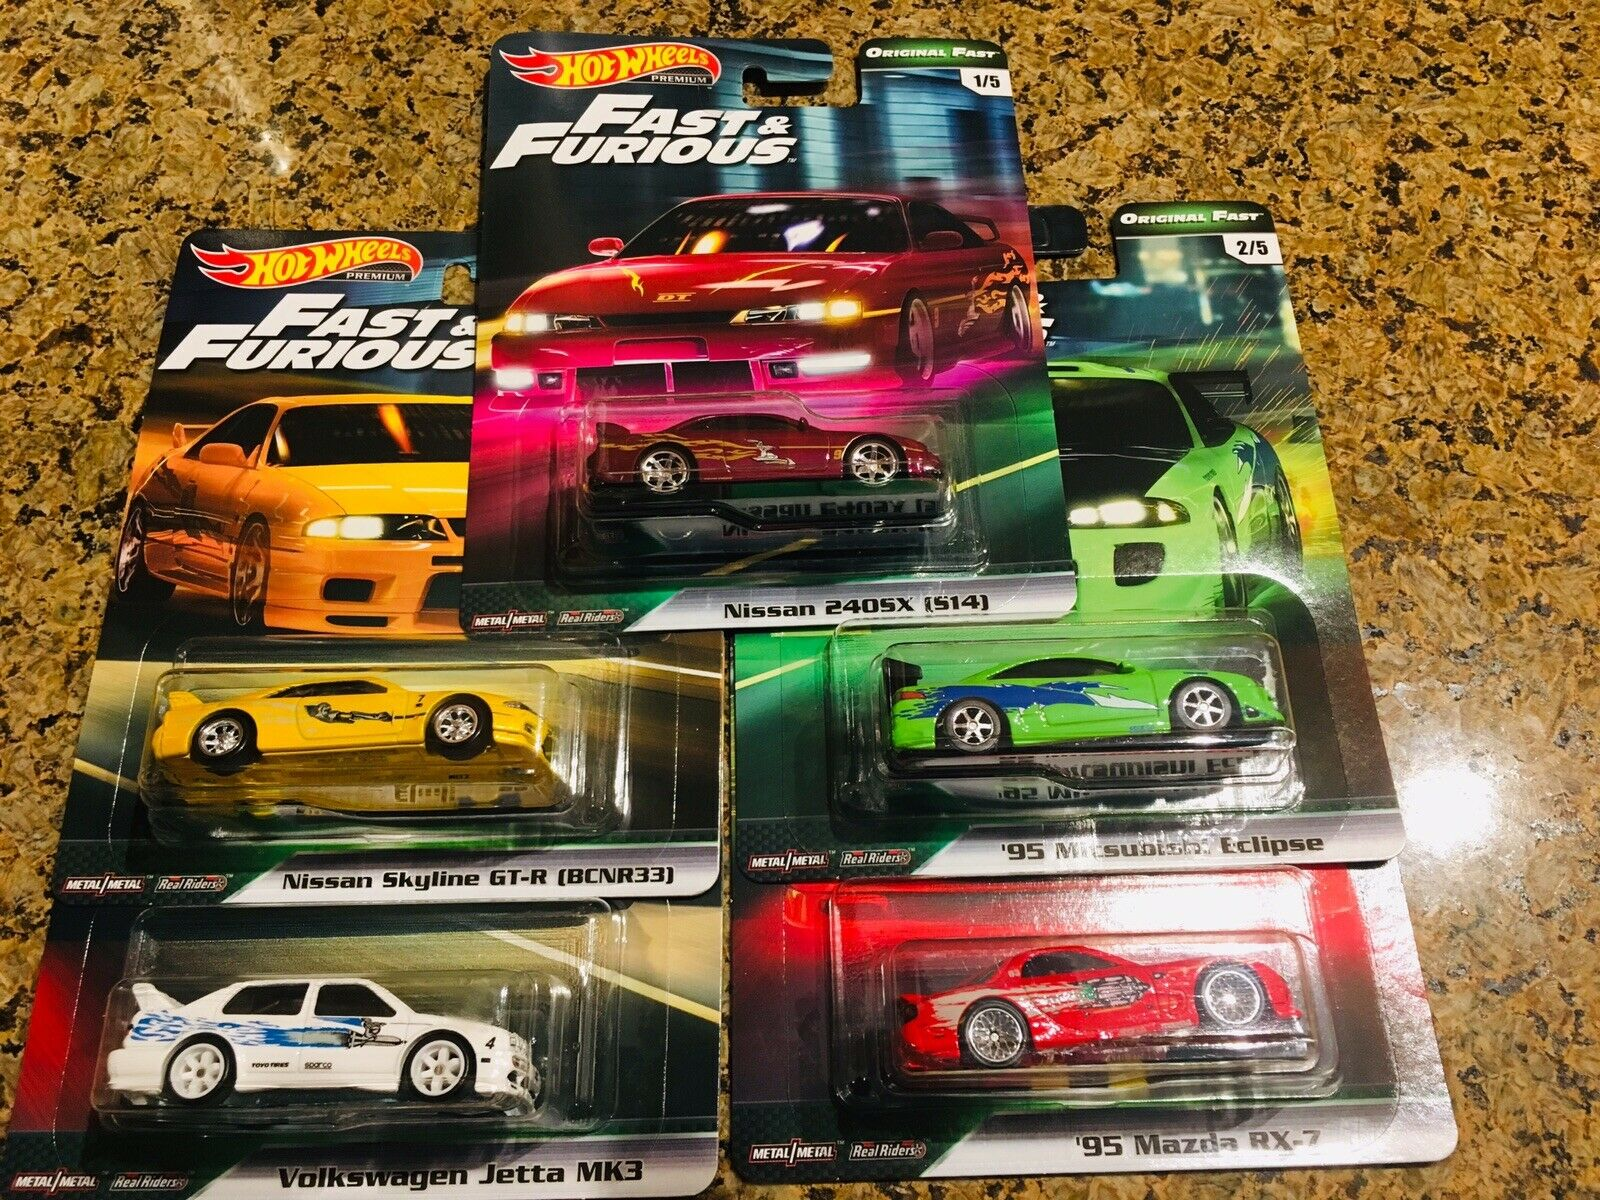 2019 HOT WHEELS FAST & FURIOUS ORIGINAL FAST SET OF 5 In Hand Ready To Ship.